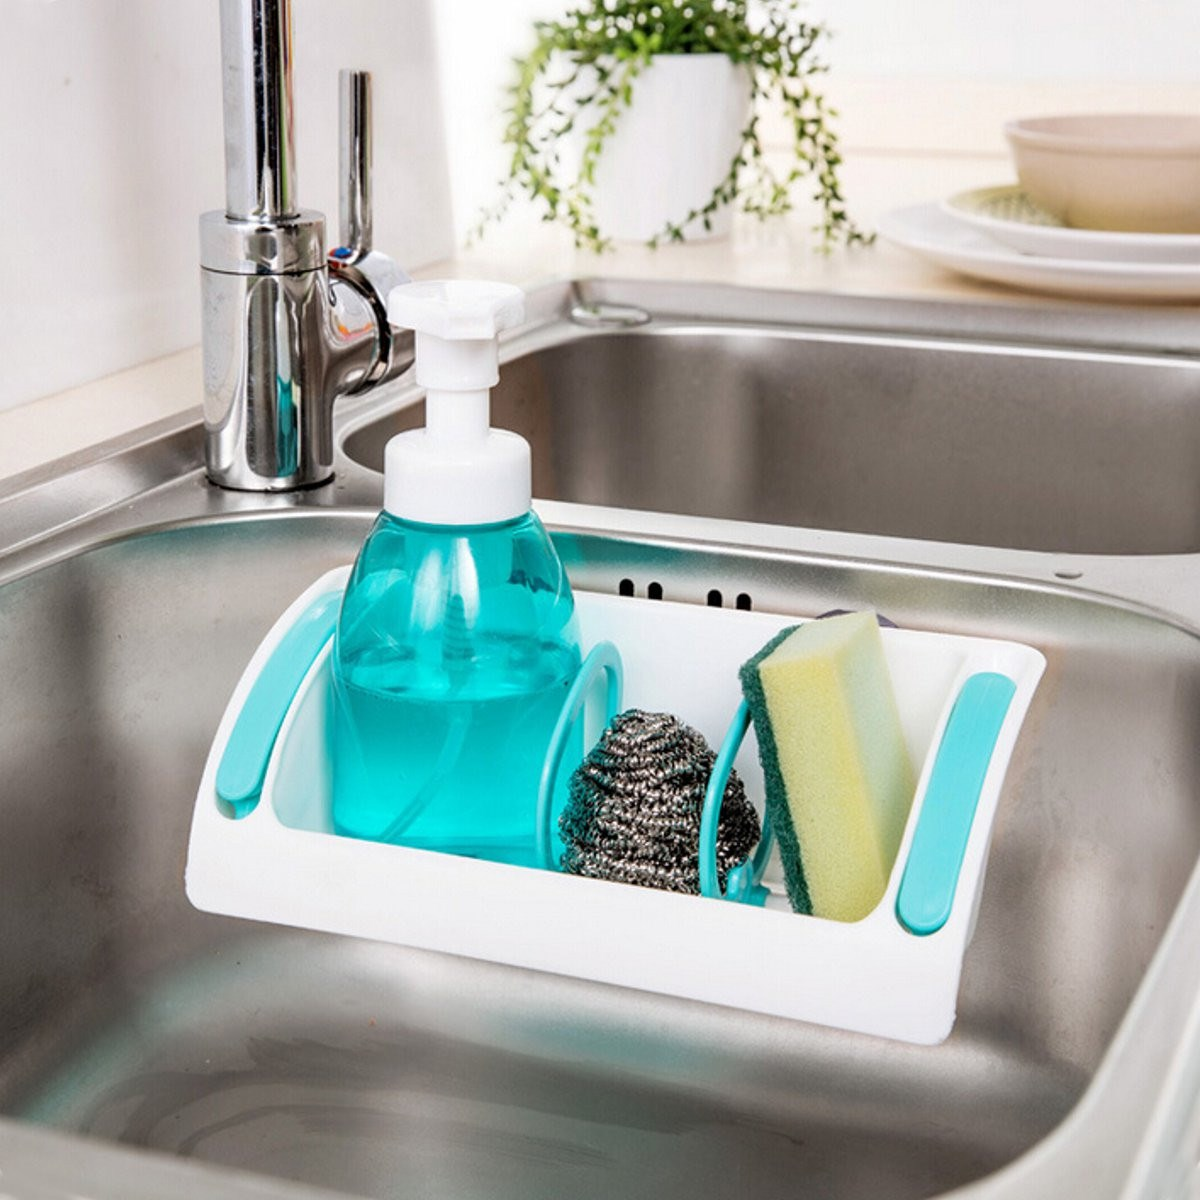 Kitchen Sink Storage #35: 1Pcs Kitchen Sink Suction Cup Bathroom Storage Shelf Rack Home Bathroom Sundries Holder Organiser Tray(